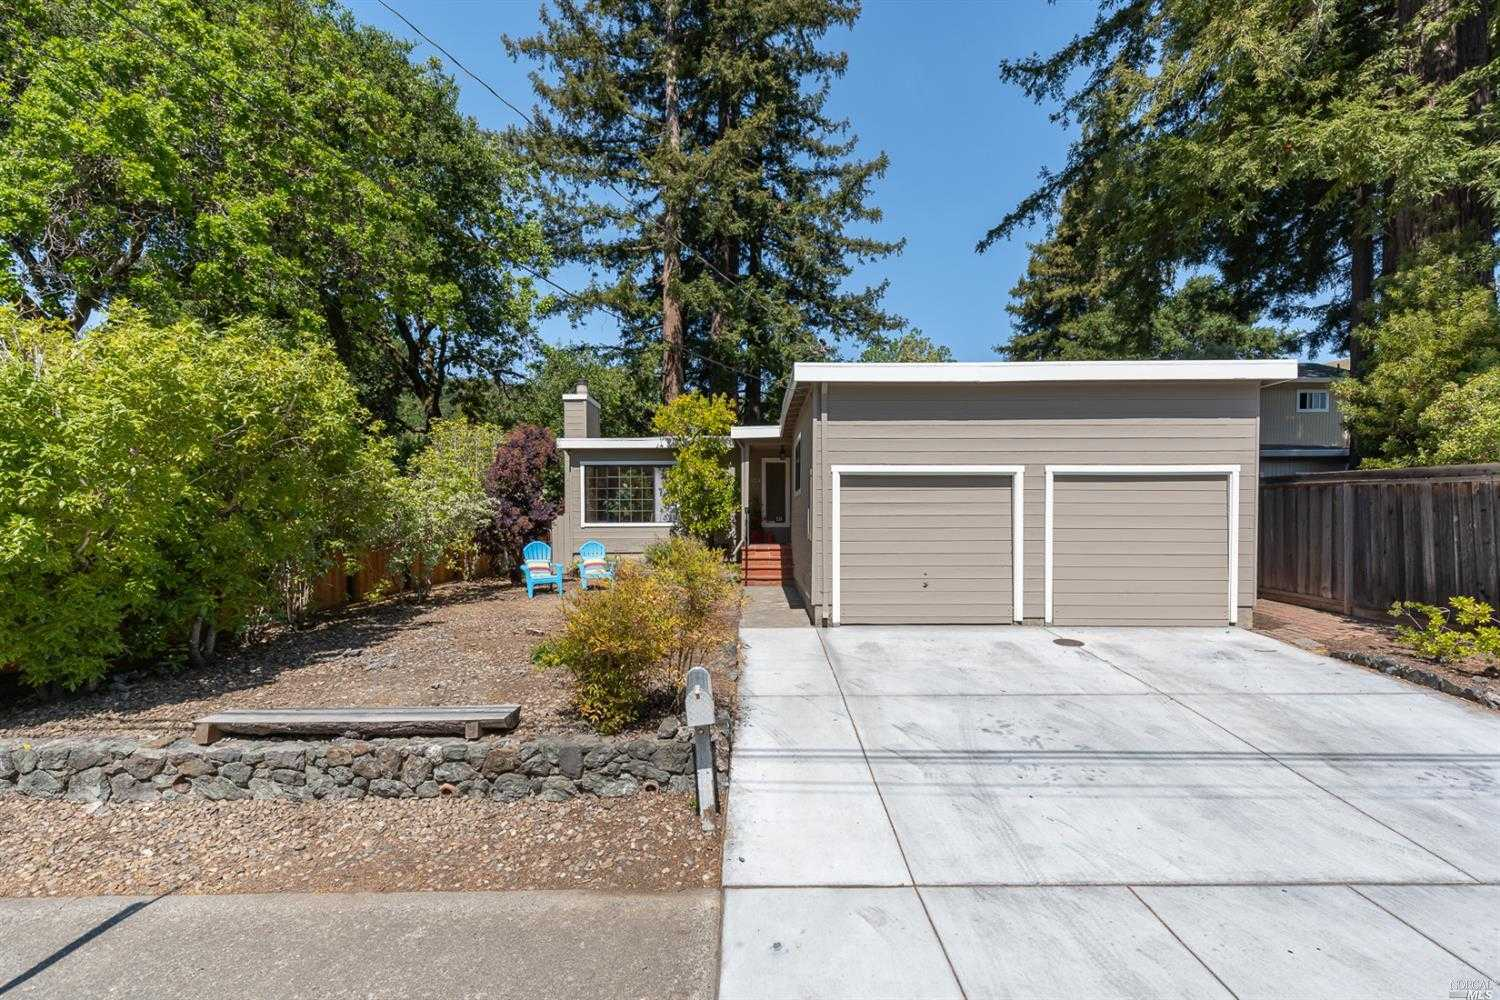 $1,095,000 - 3Br/2Ba -  for Sale in San Anselmo